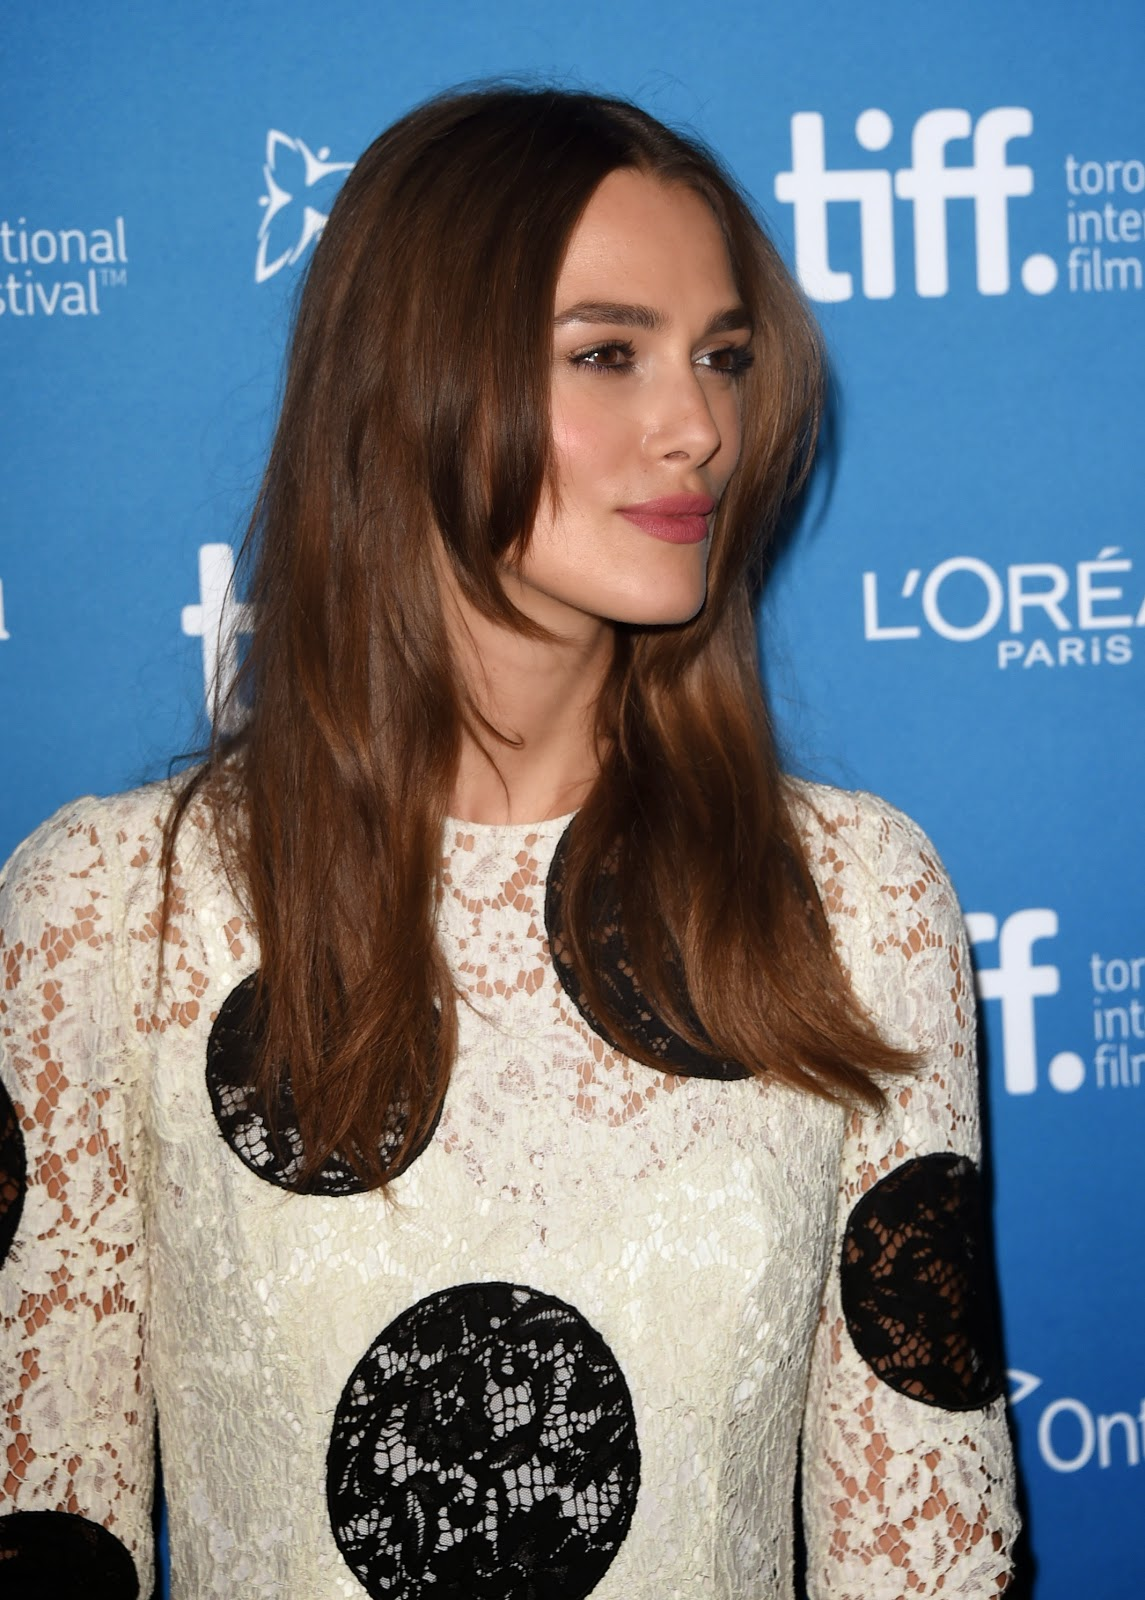 Keira Knightley HD Pictures | Wallpapers of Keira Knightley